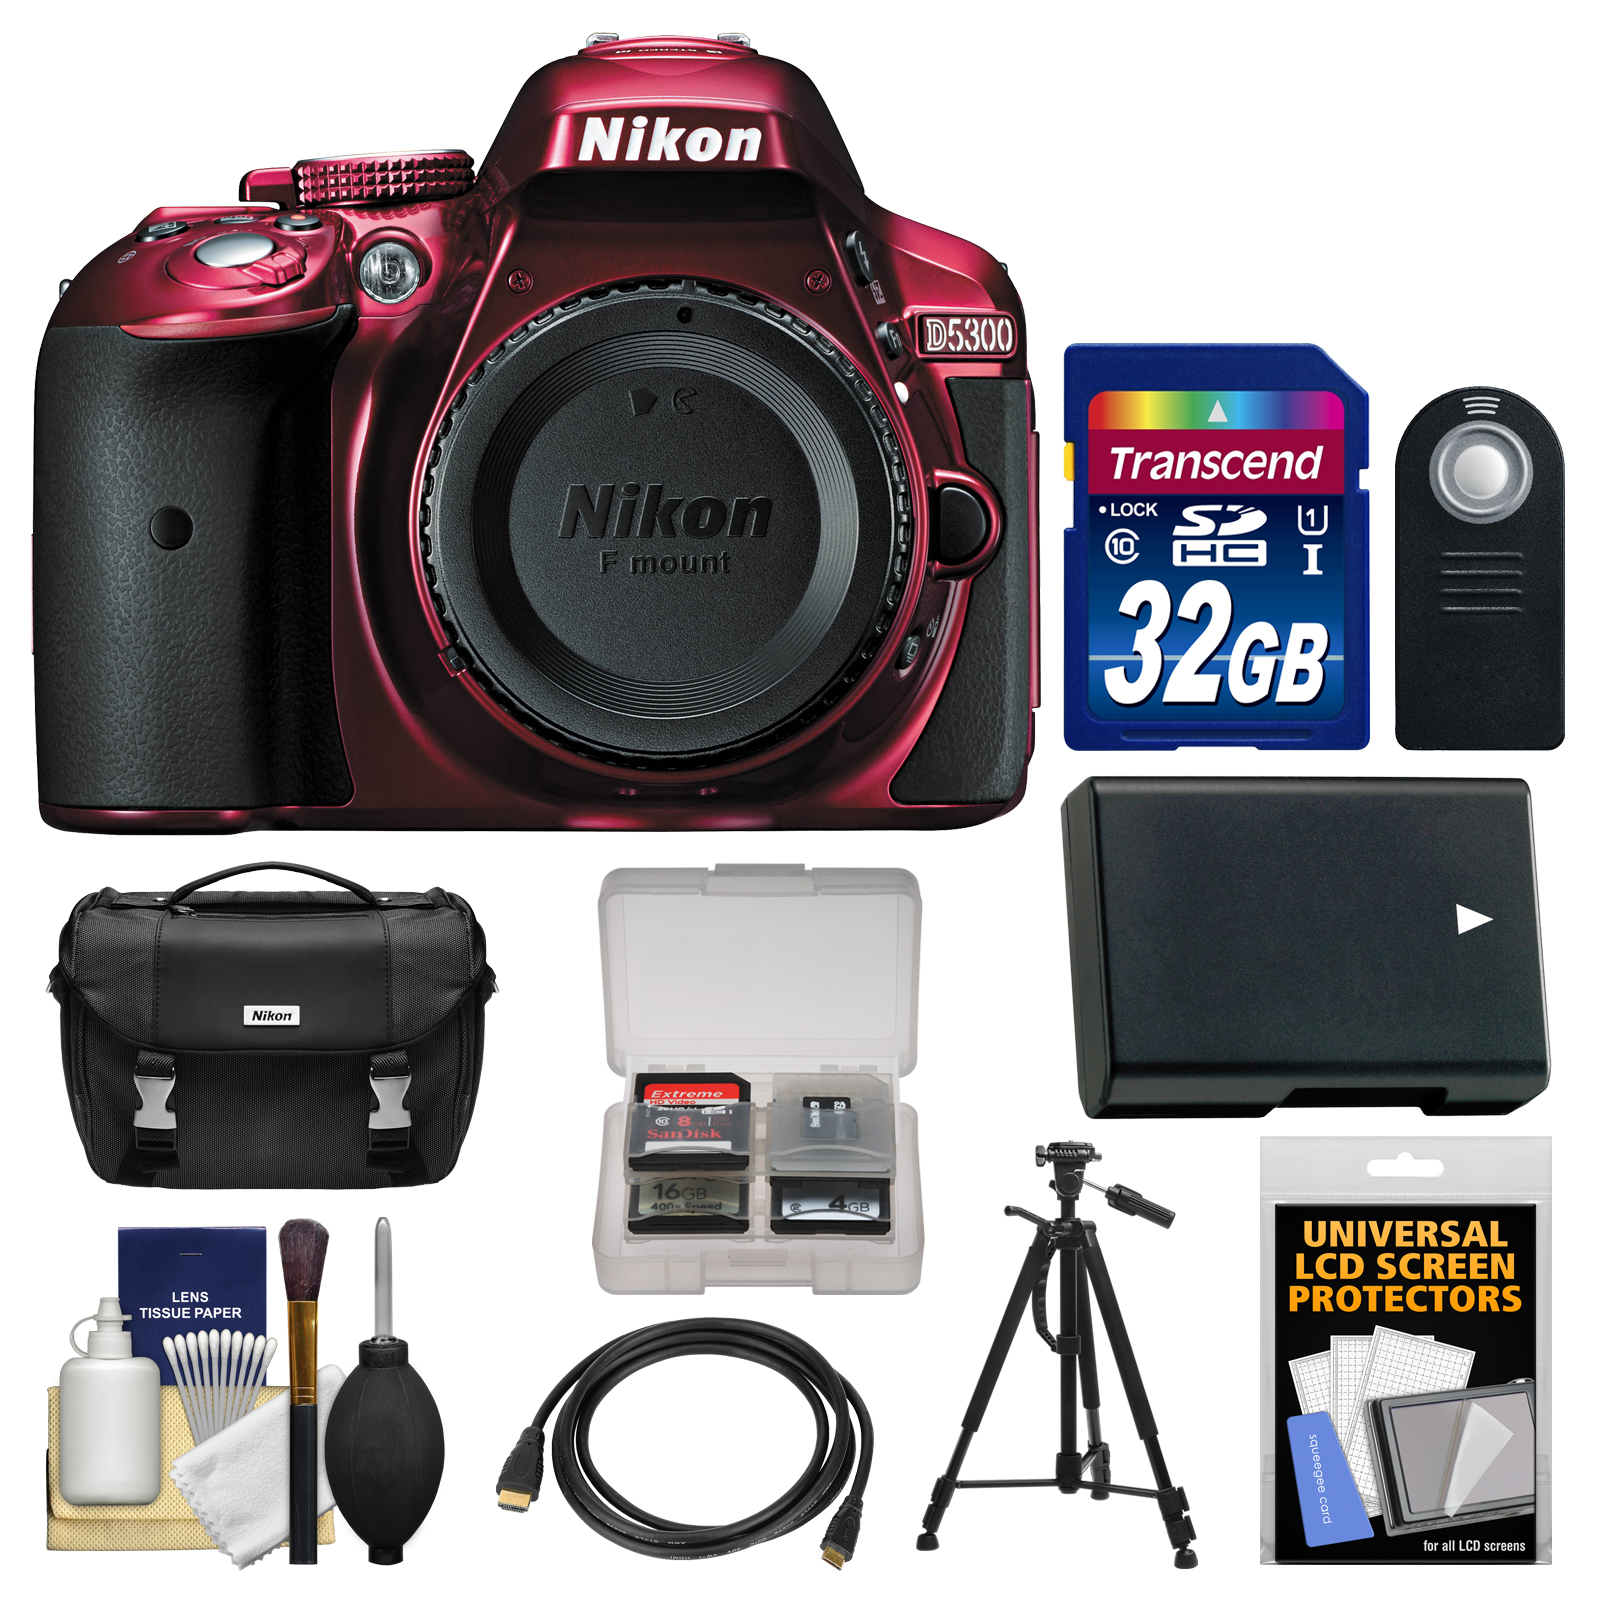 Nikon D5300 Digital SLR Camera Body (Red) with 32GB Card   Case   Battery   Tripod   HDMI Cable   Remote   Accessory Kit